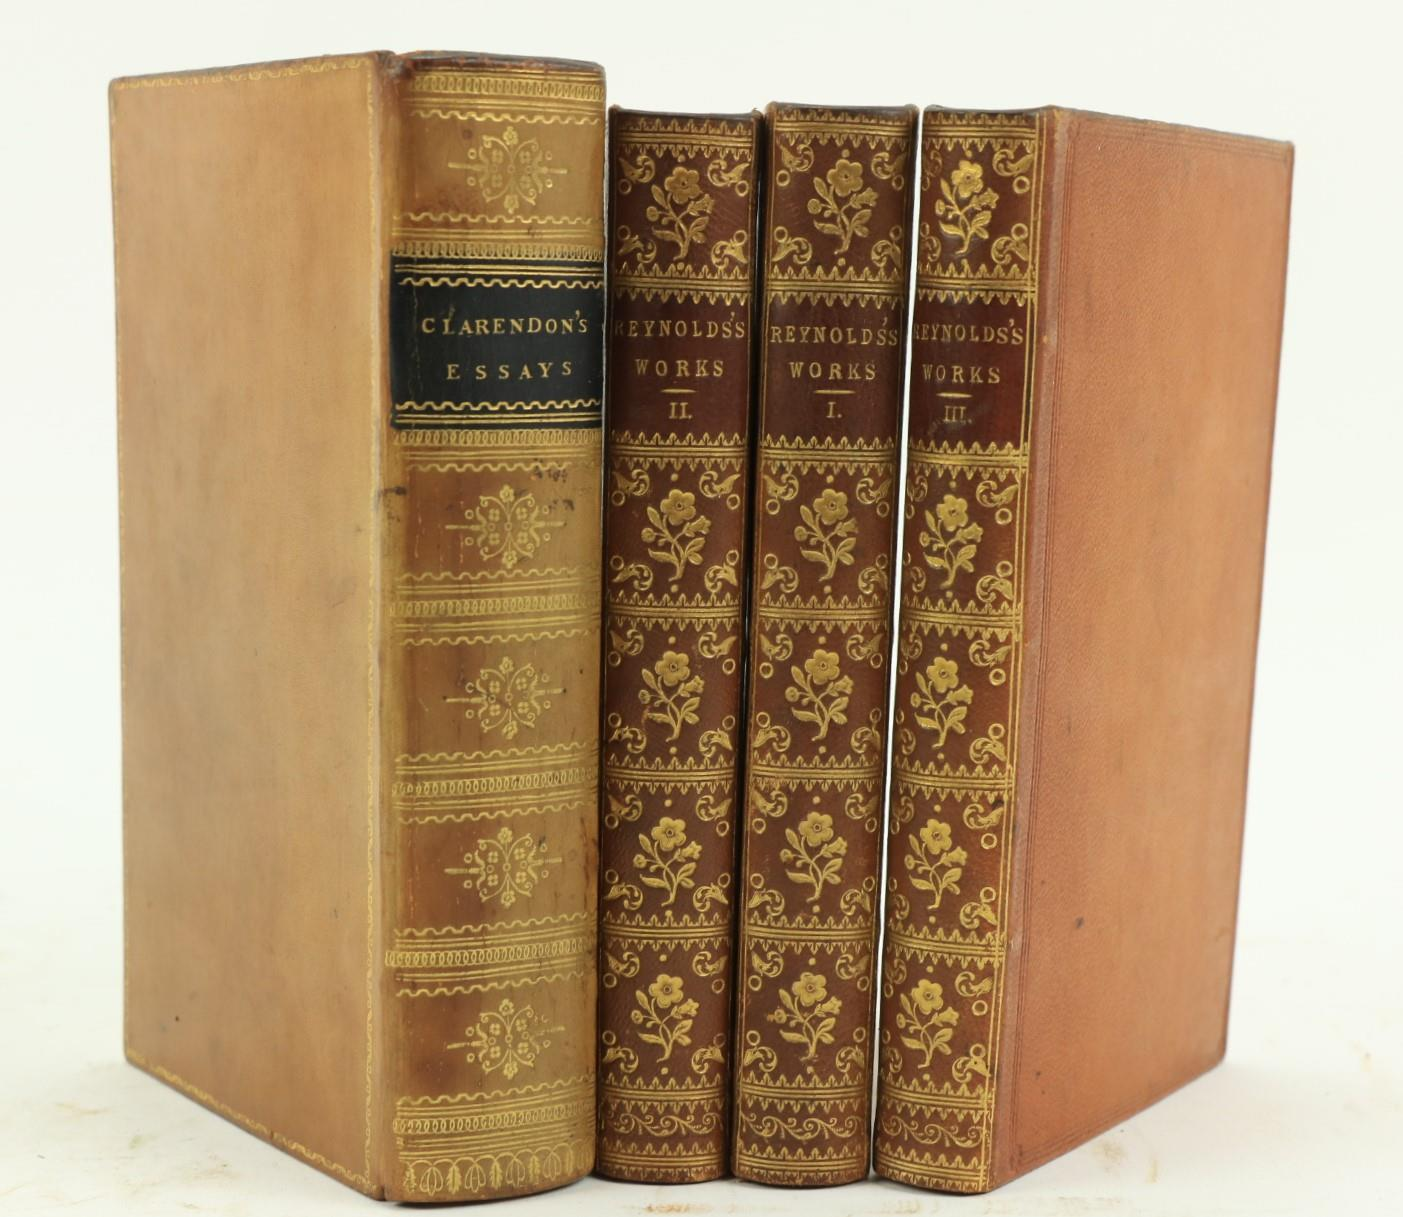 Reynolds -TheComplete Works of Sir Joshua Reynolds, First President of the Royal Academy. 3 vols.